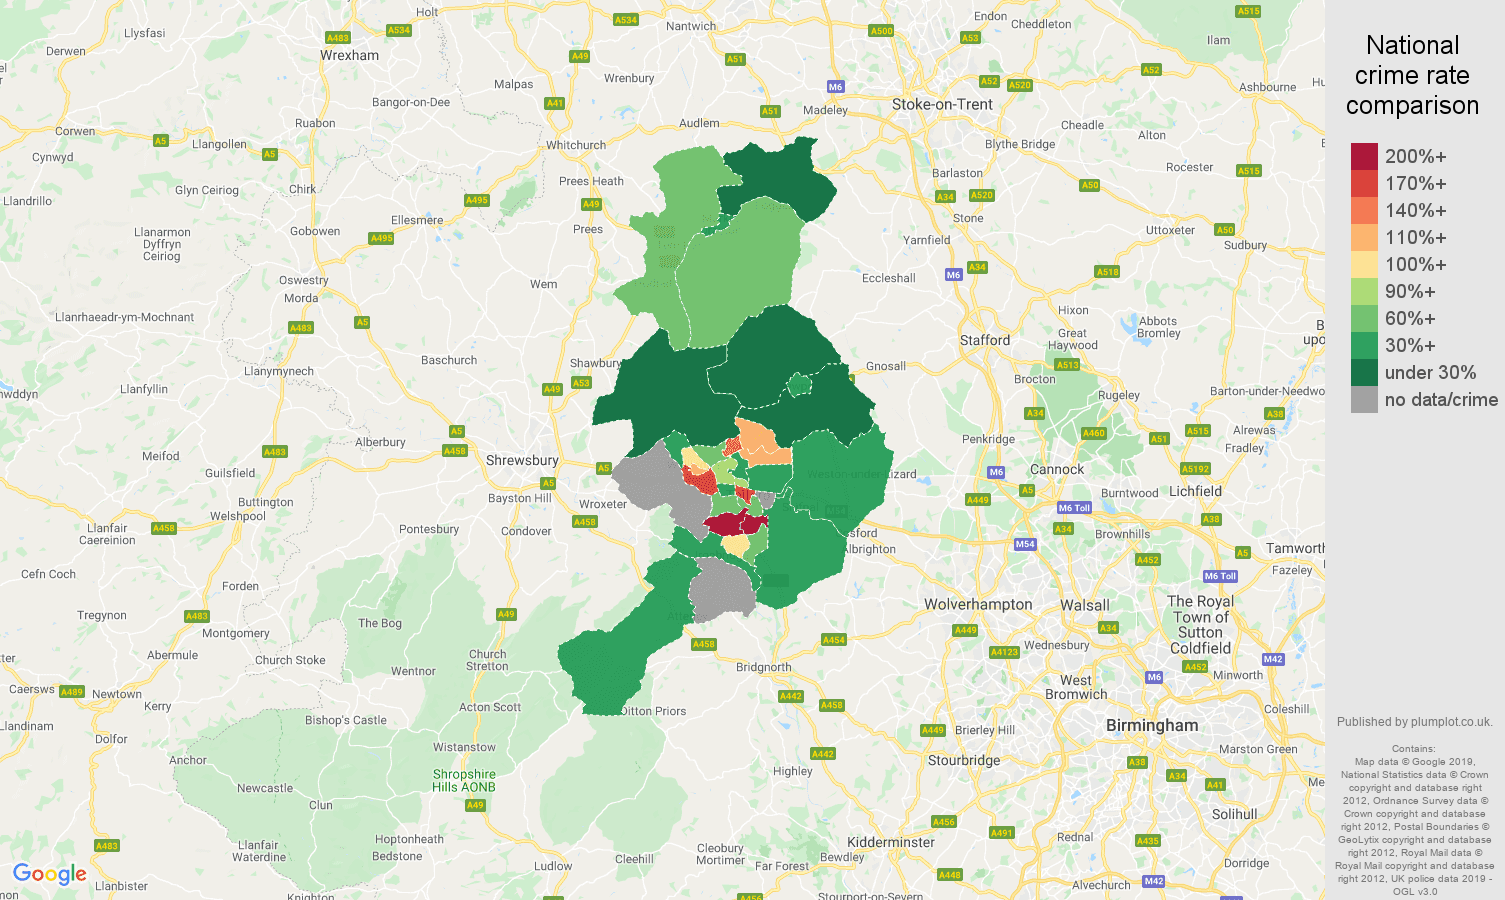 Telford other crime rate comparison map